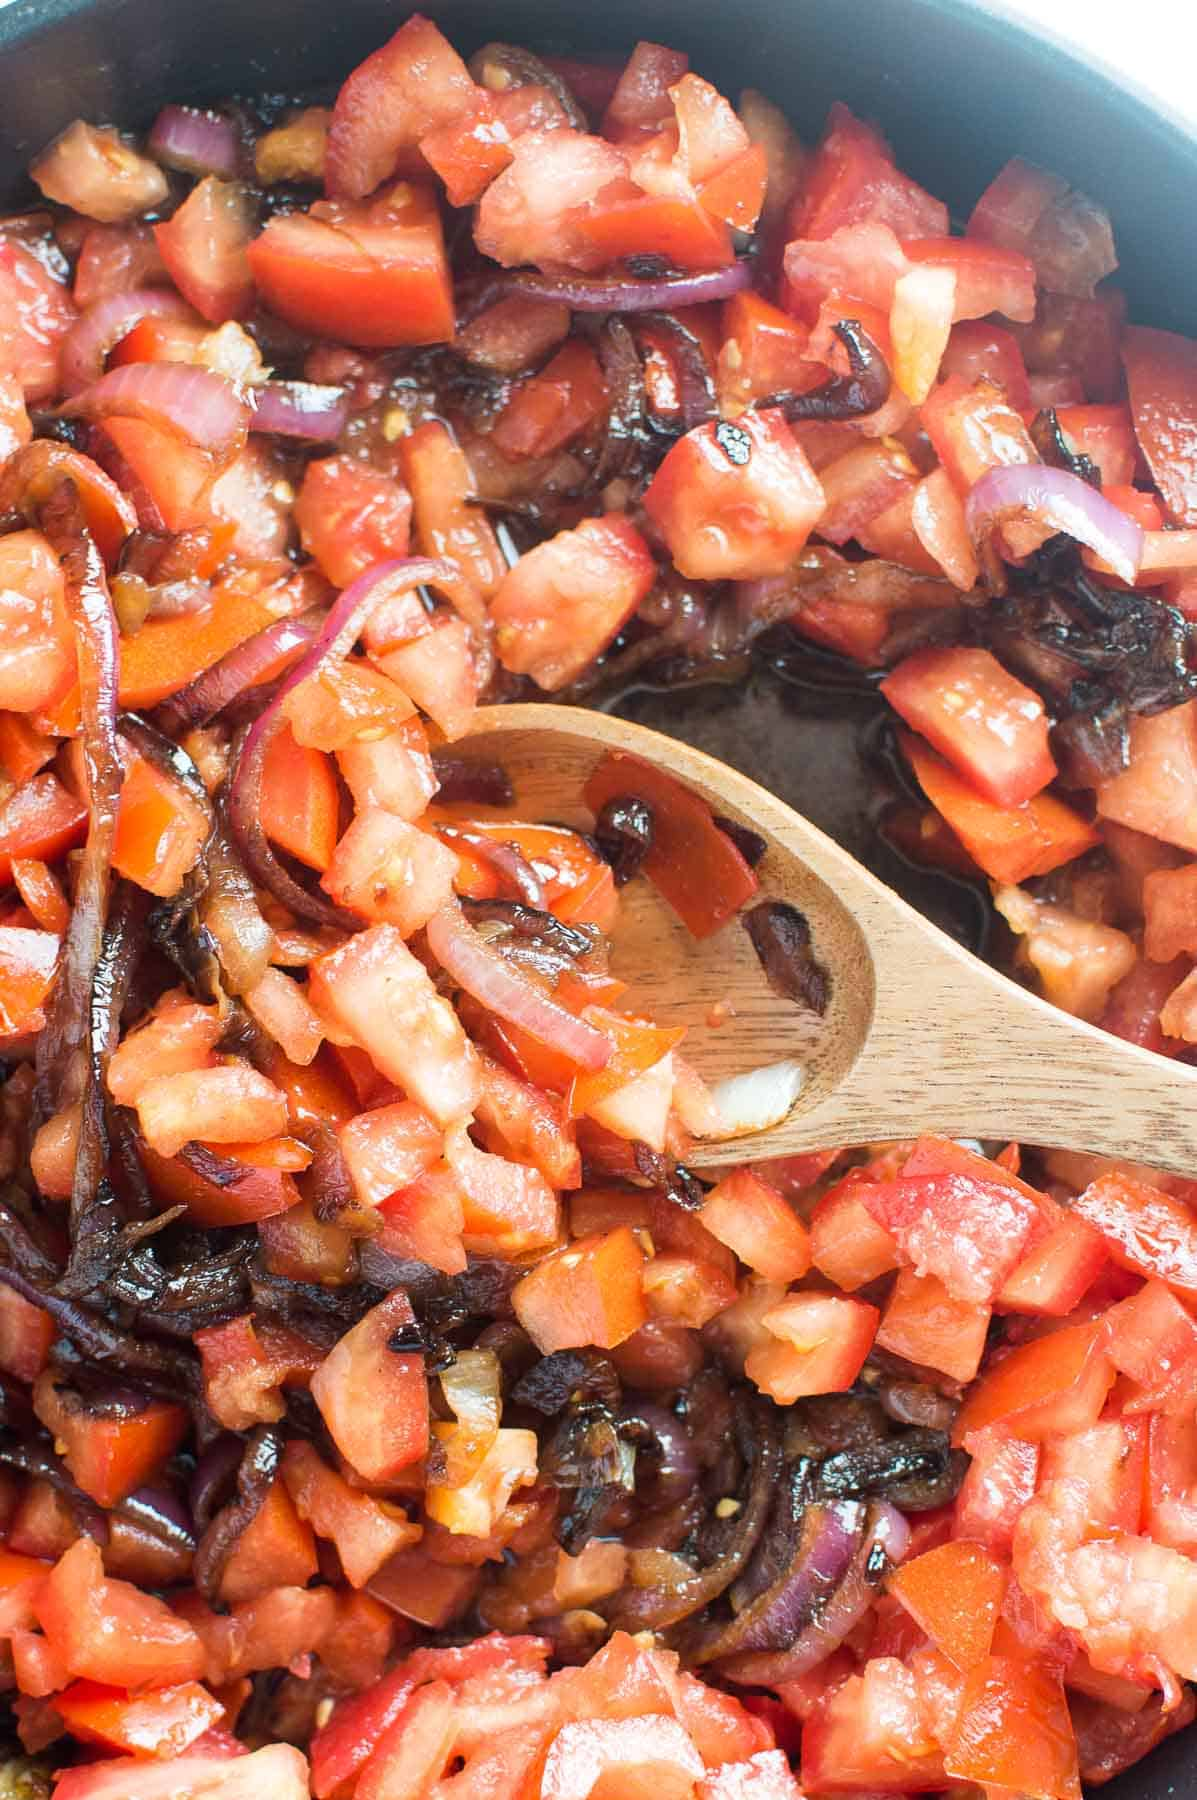 caramelized onions and tomato in pan